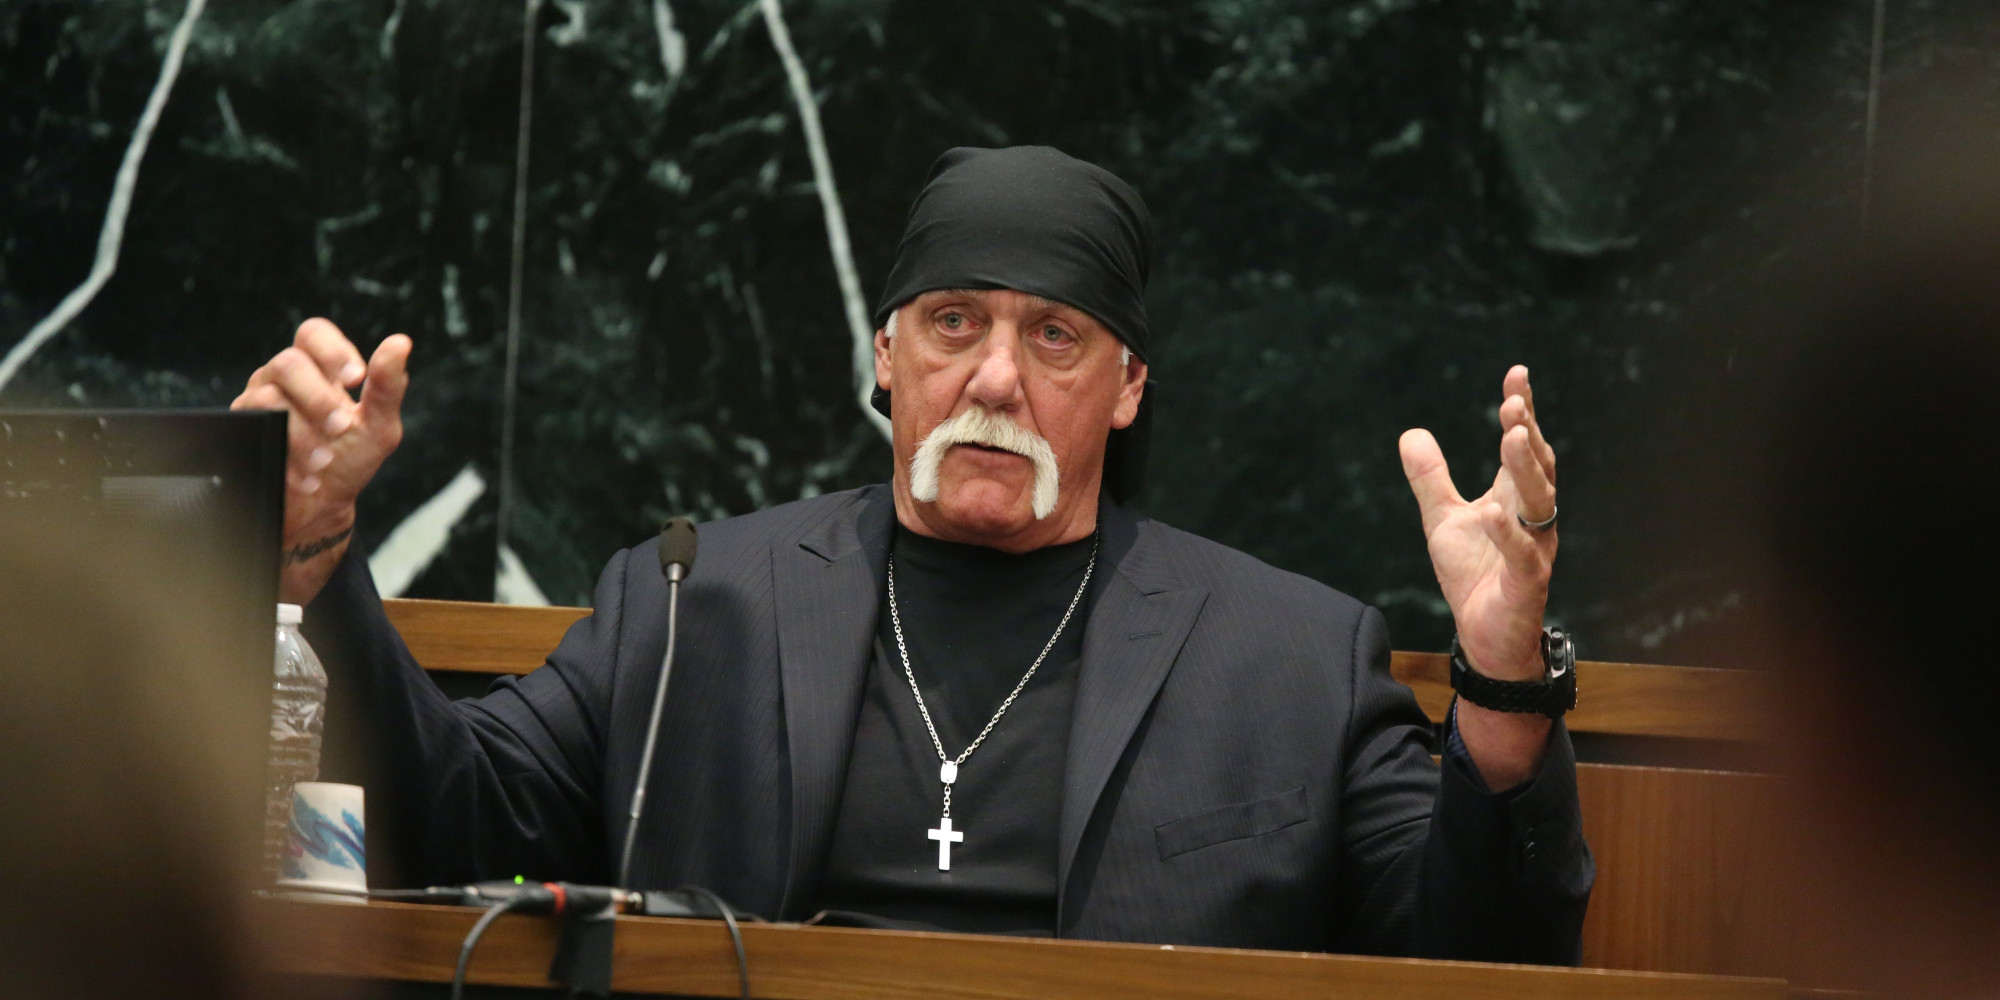 Hulk Hogan 2017 Hulk Hogan V Gawker A Fight Between Privacy And Free